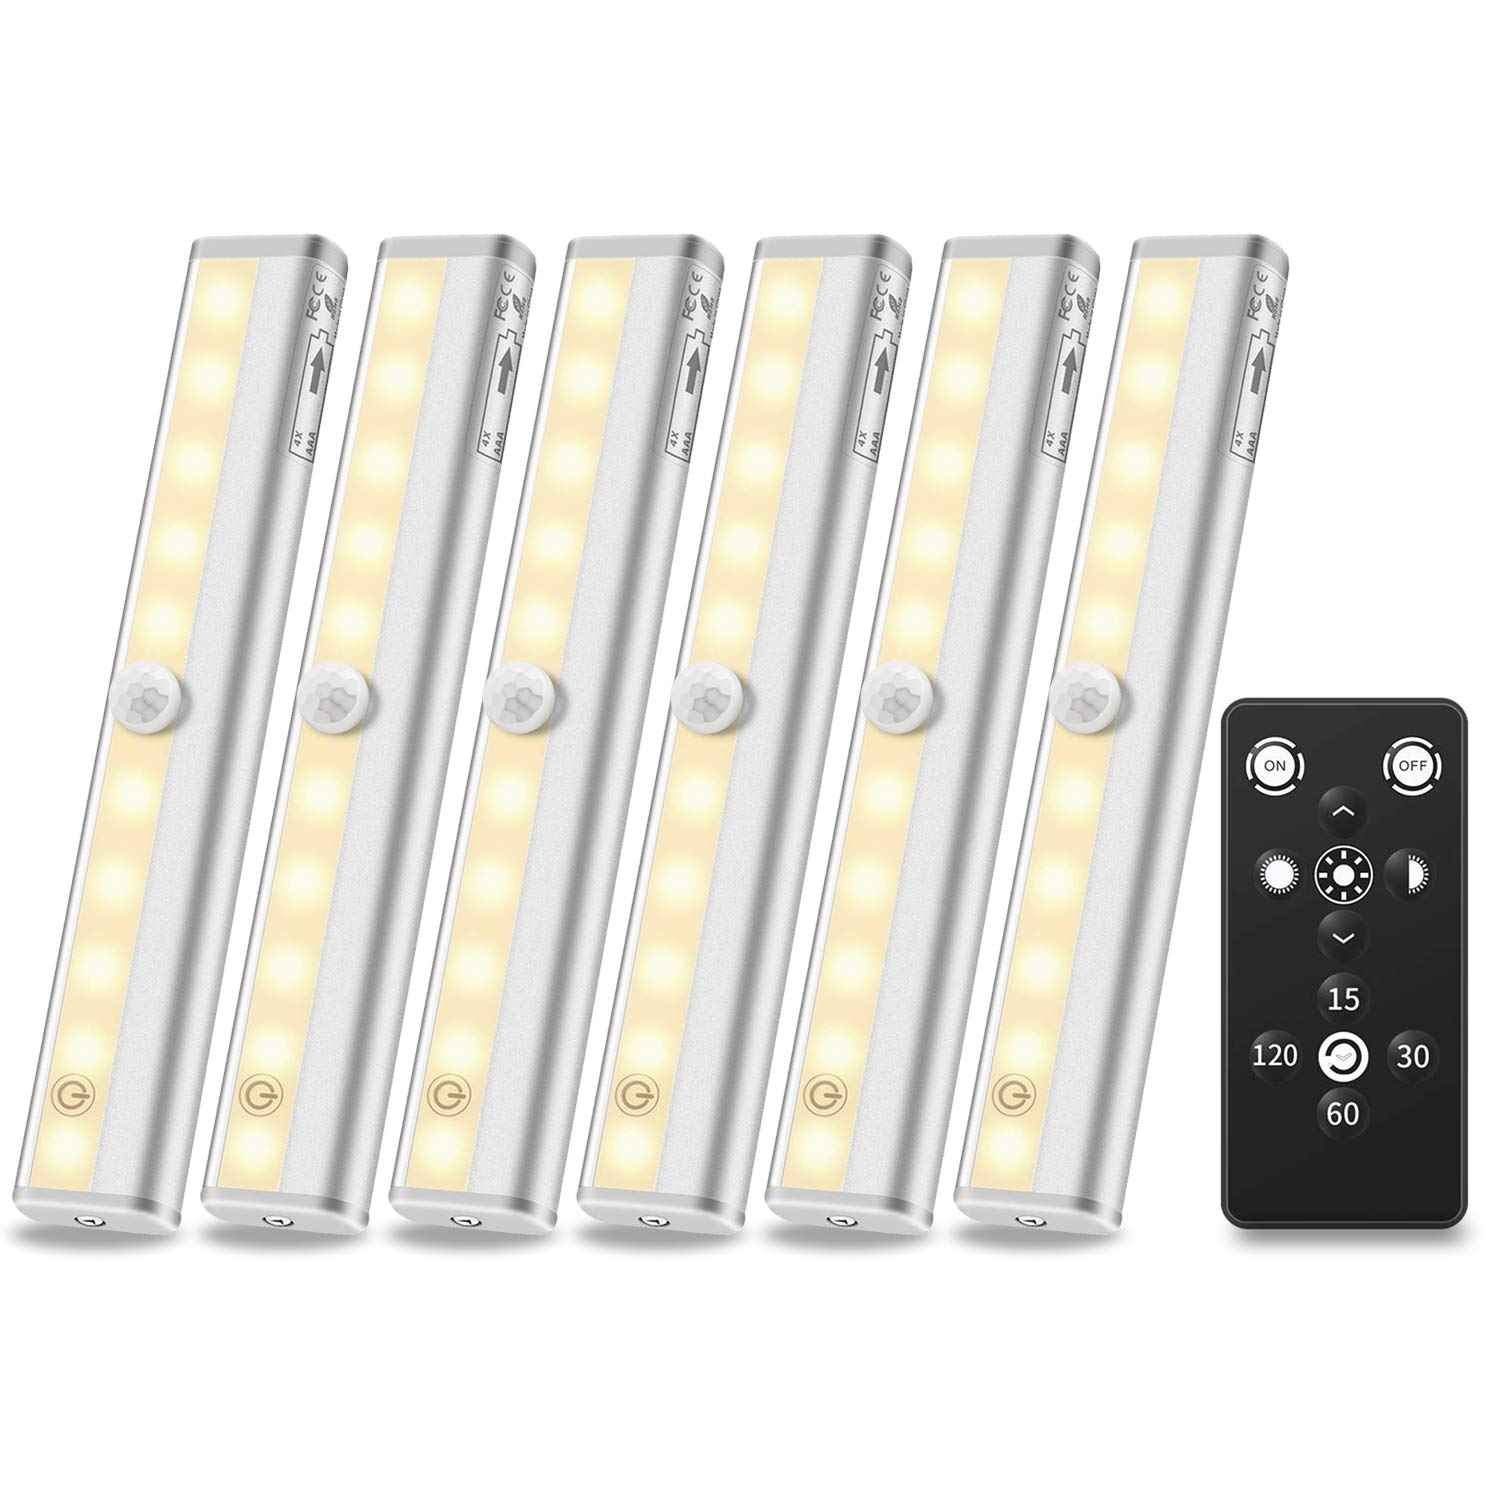 Anbock Wireless Under Cabinet Light with Remote control LED Closet Lights Battery Powered Counter Lighting Touch Switch Dimmable Stick-on Anywhere for Kitchen Stairway Pantry Warm White 3000K 6 Pack by Anbock